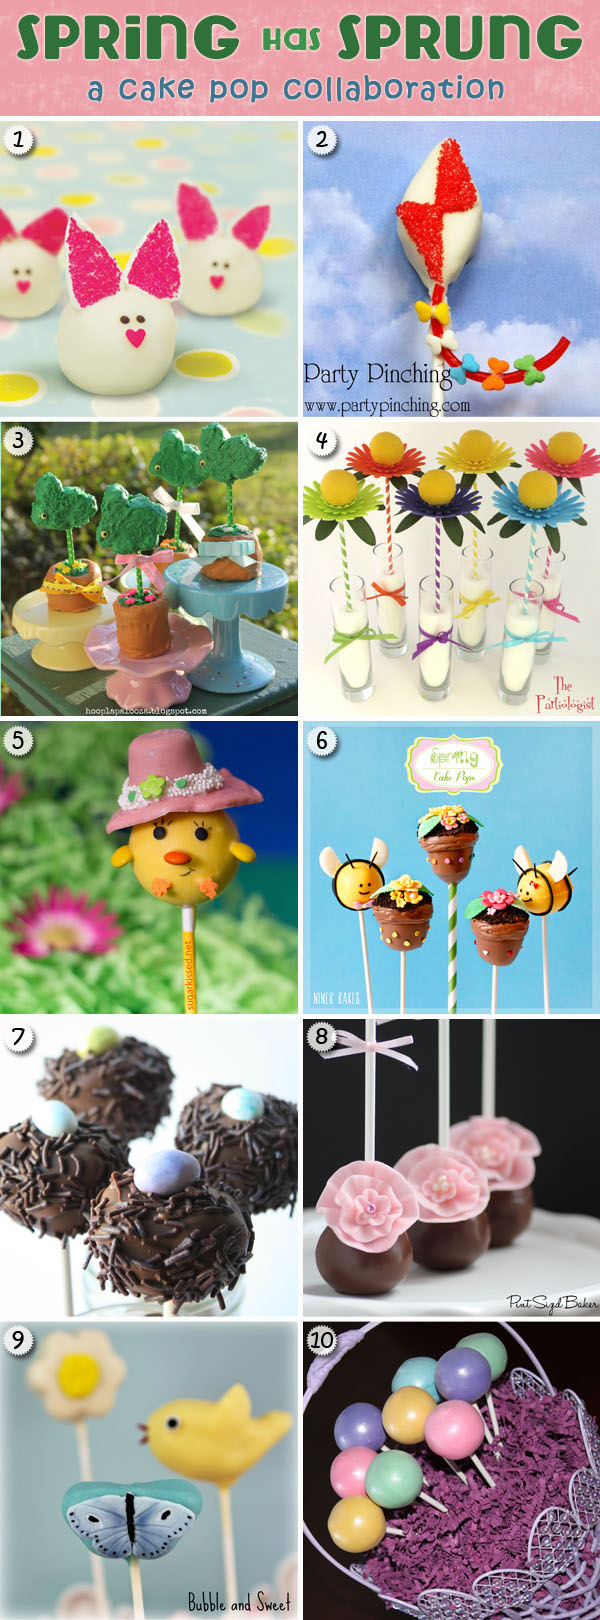 10 Spring Cake Pop Recipes